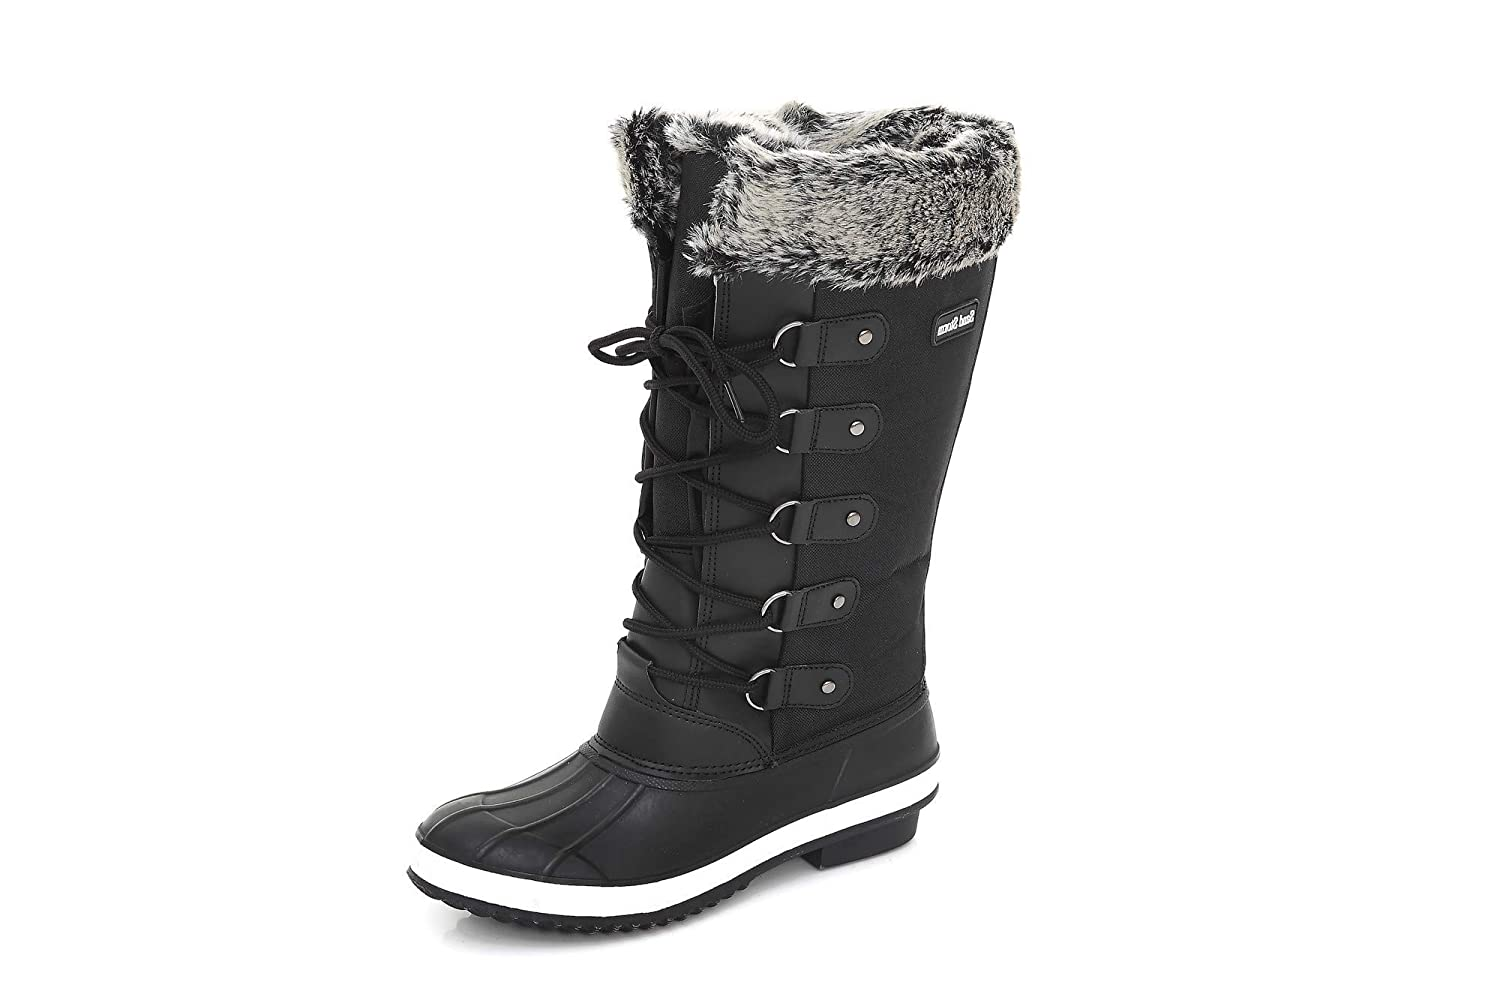 Sand Storm Womens Winter Snow Boots Tall Insulated Lace-up Closure Comfortable Weatherproof